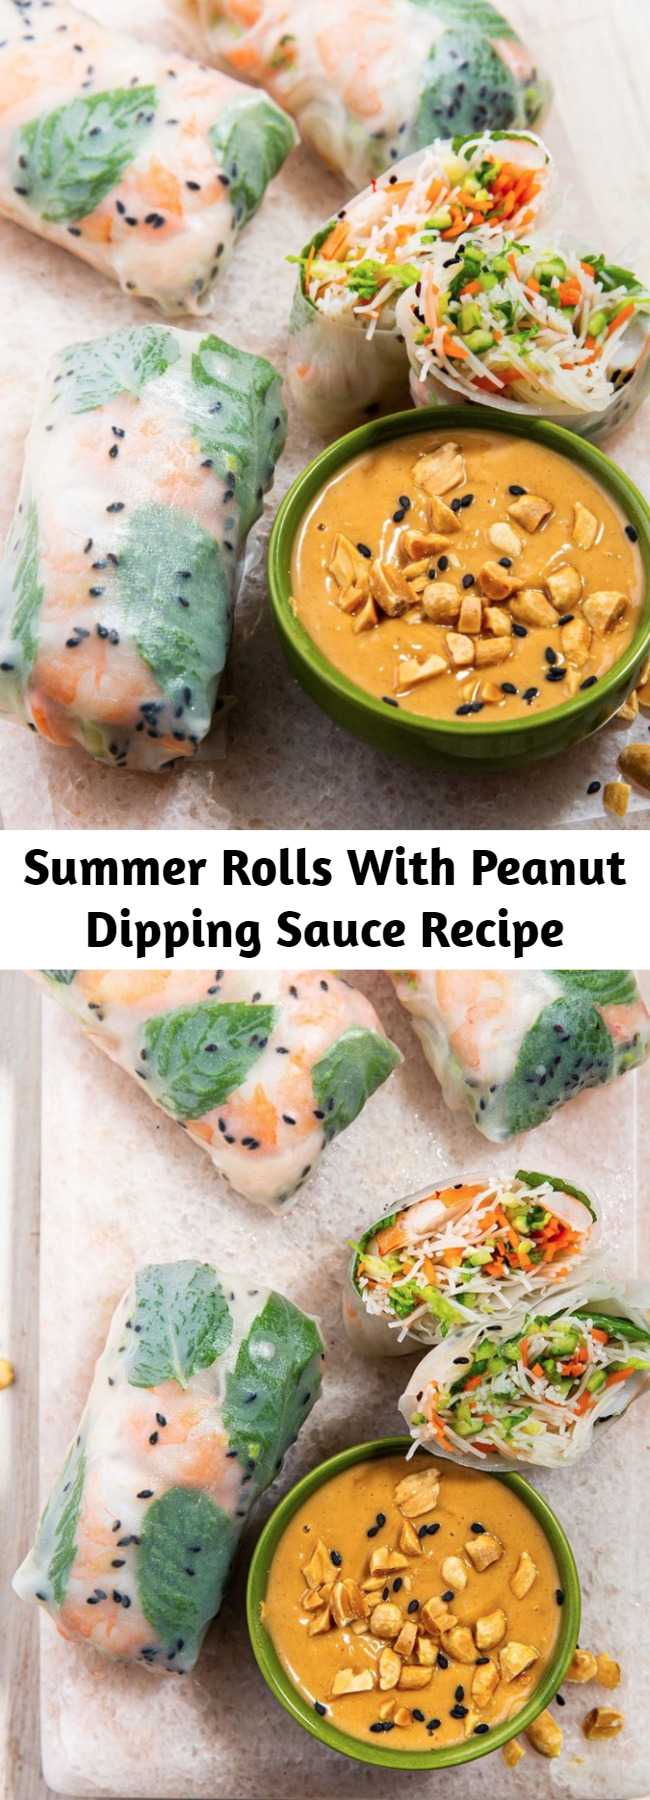 Summer Rolls With Peanut Dipping Sauce Recipe - No need to wait for summer to enjoy these bad boys! Brimming with shrimp, carrot, cucumbers, cabbage, and fresh herbs AND paired with a peanut dipping sauce, these will disappear right away at any party or gathering. They're incredibly refreshing!